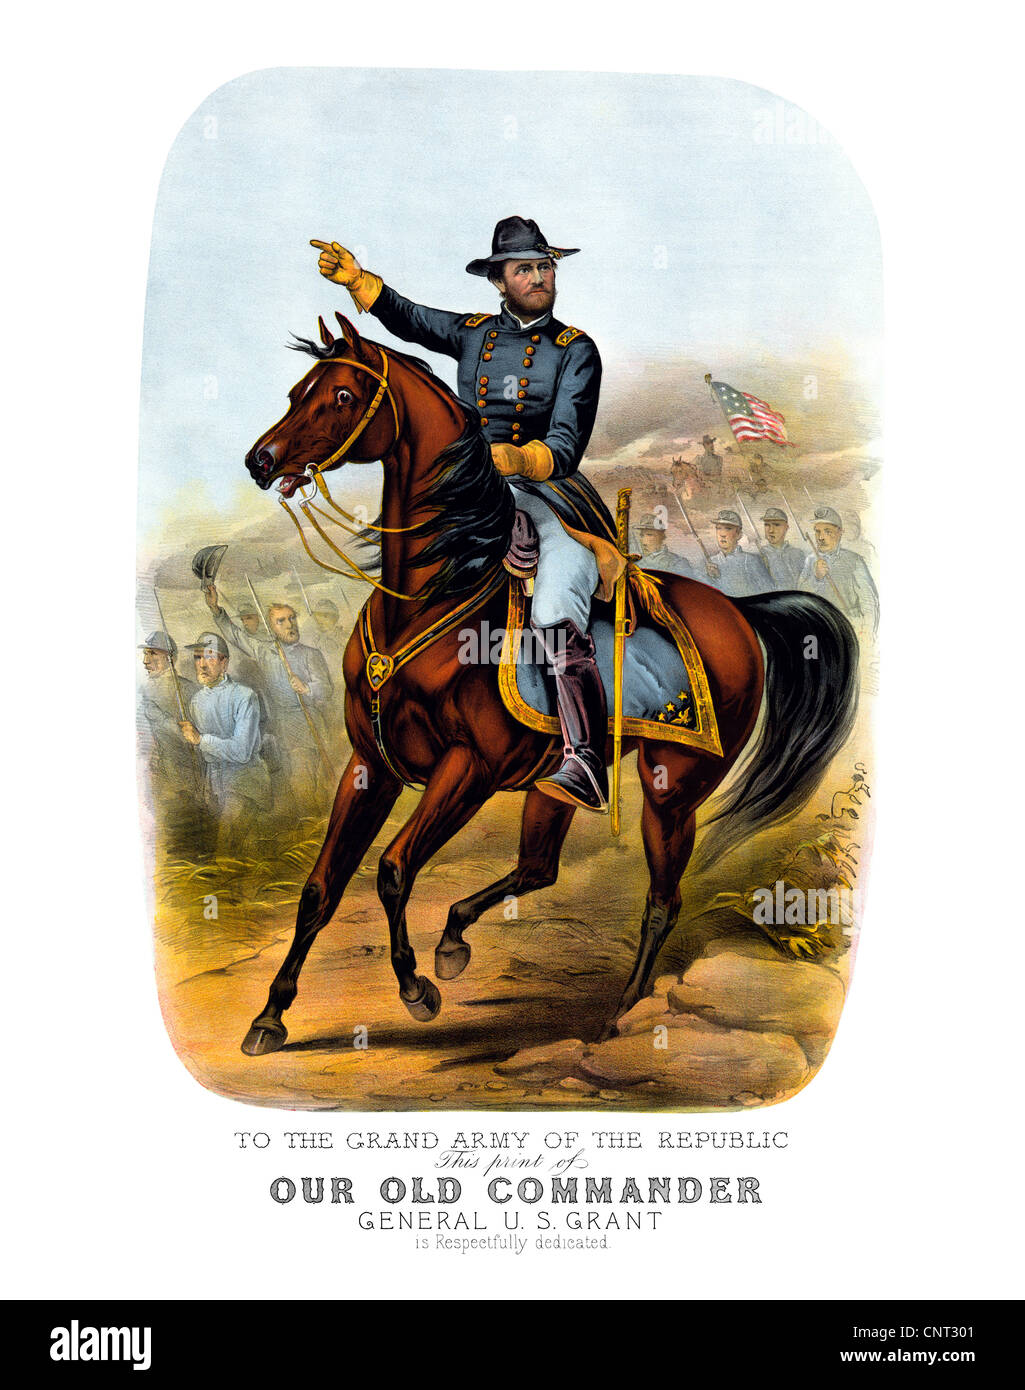 Vintage Civil War poster of General Ulysses S. Grant, on horseback, leading Union troops into battle. - Stock Image